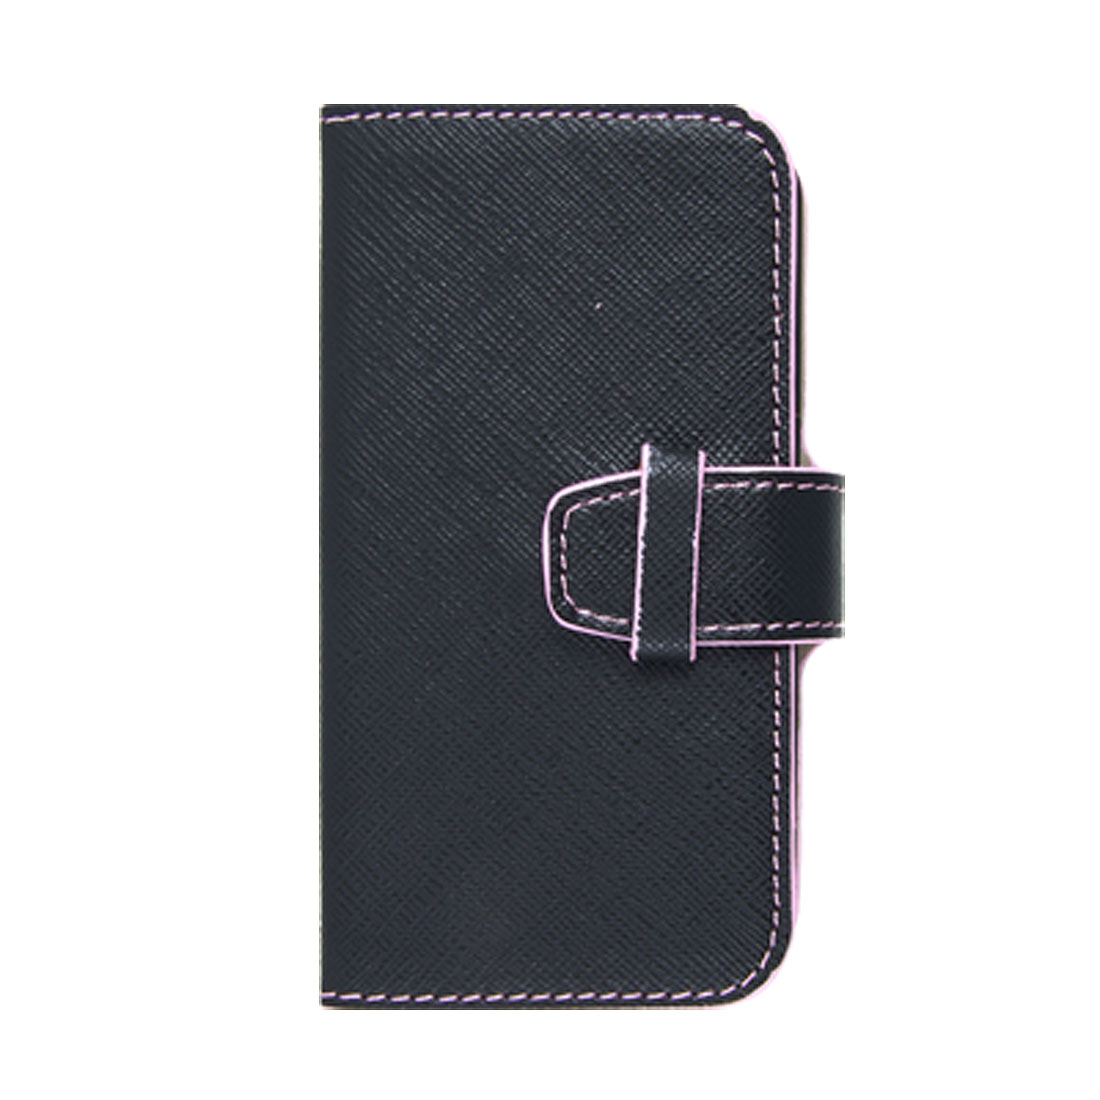 Black Faux Leather Pink Hem Horizontal Pouch Case for iPhone 4 4G